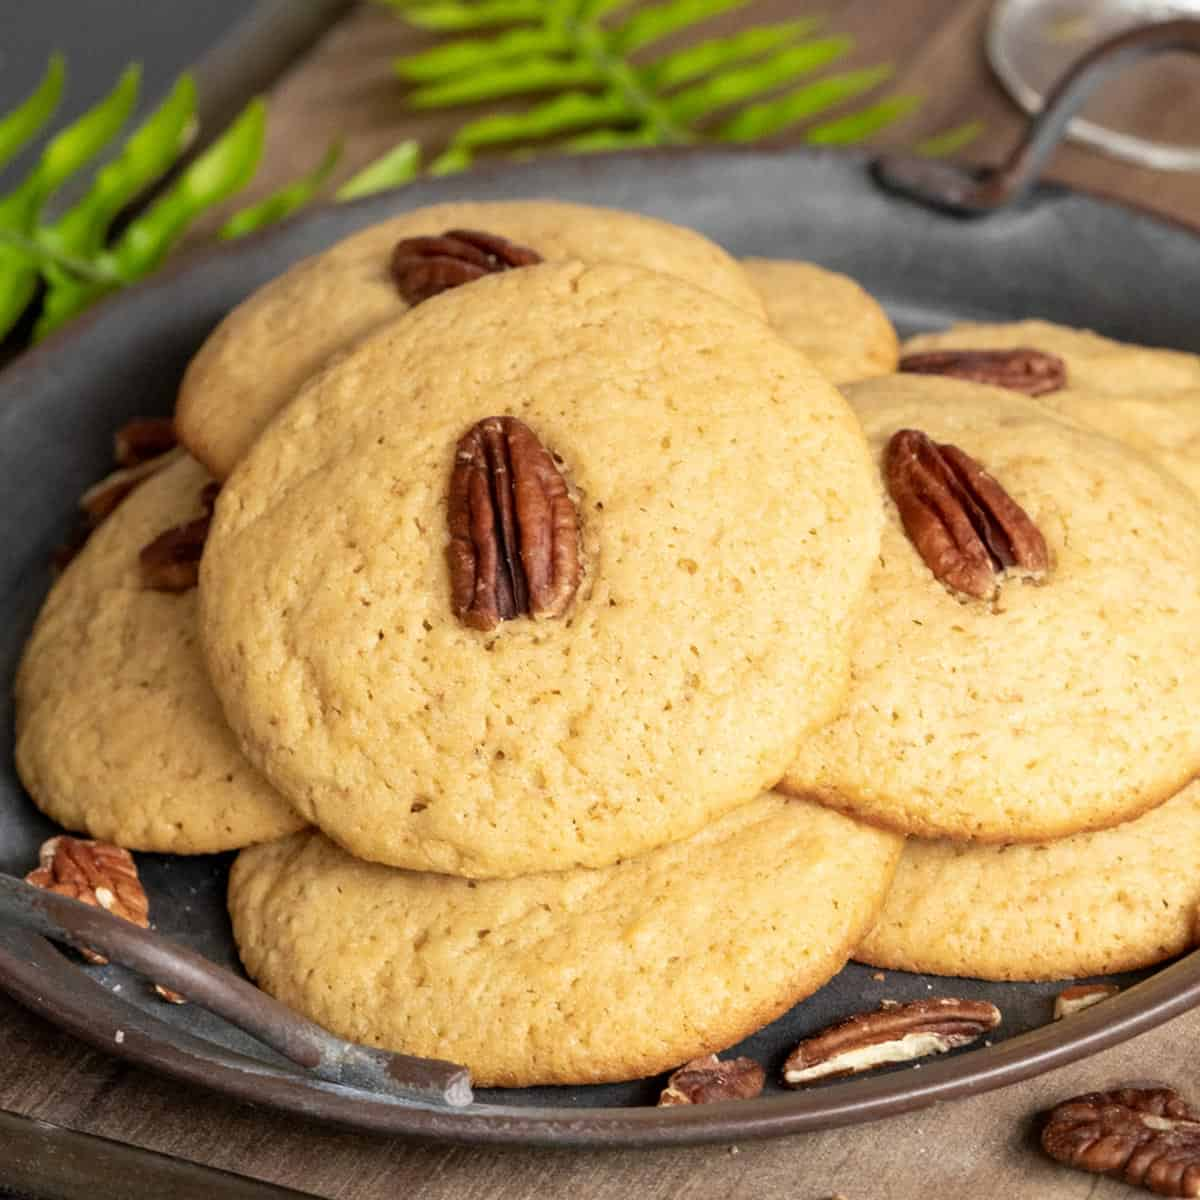 Espresso Mascarpone Rum cookies on a serving plate.